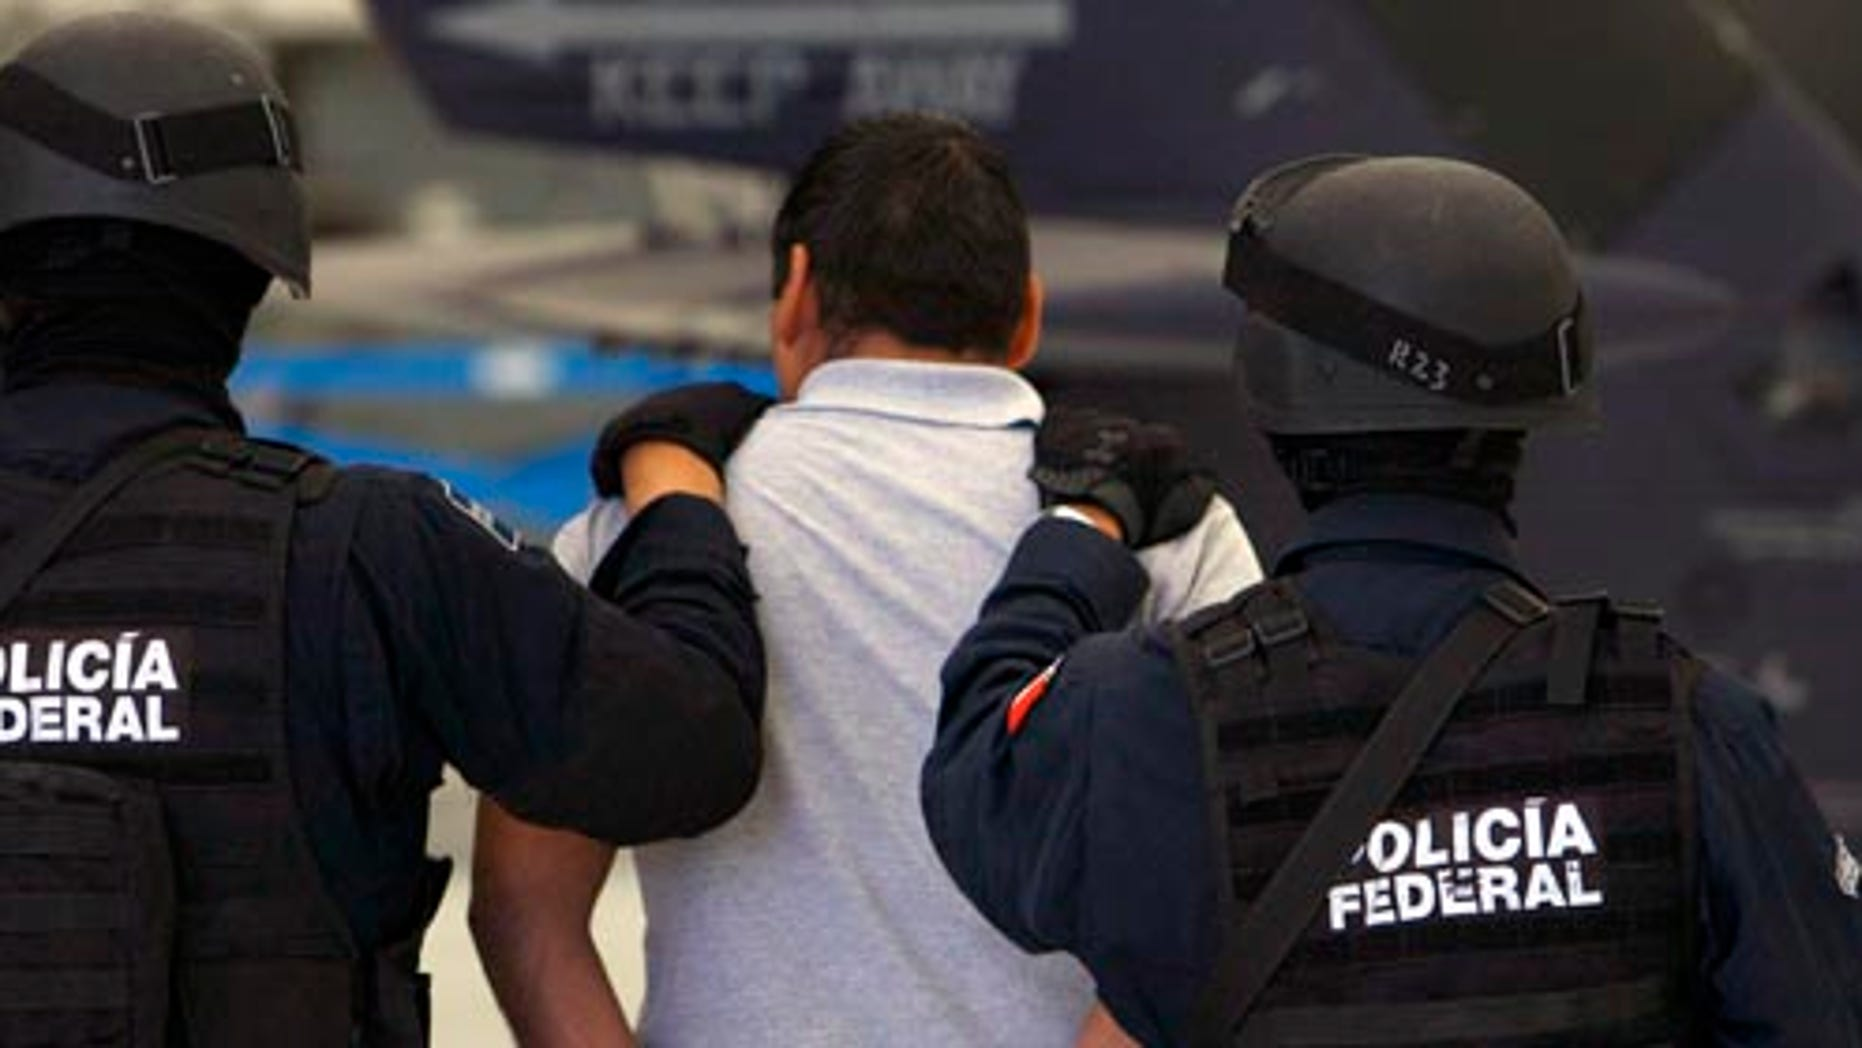 Mexican police have captured high-profile drug kingpins in recent years, but complaints of abuse and corruption from members of the force have skyrocketed.